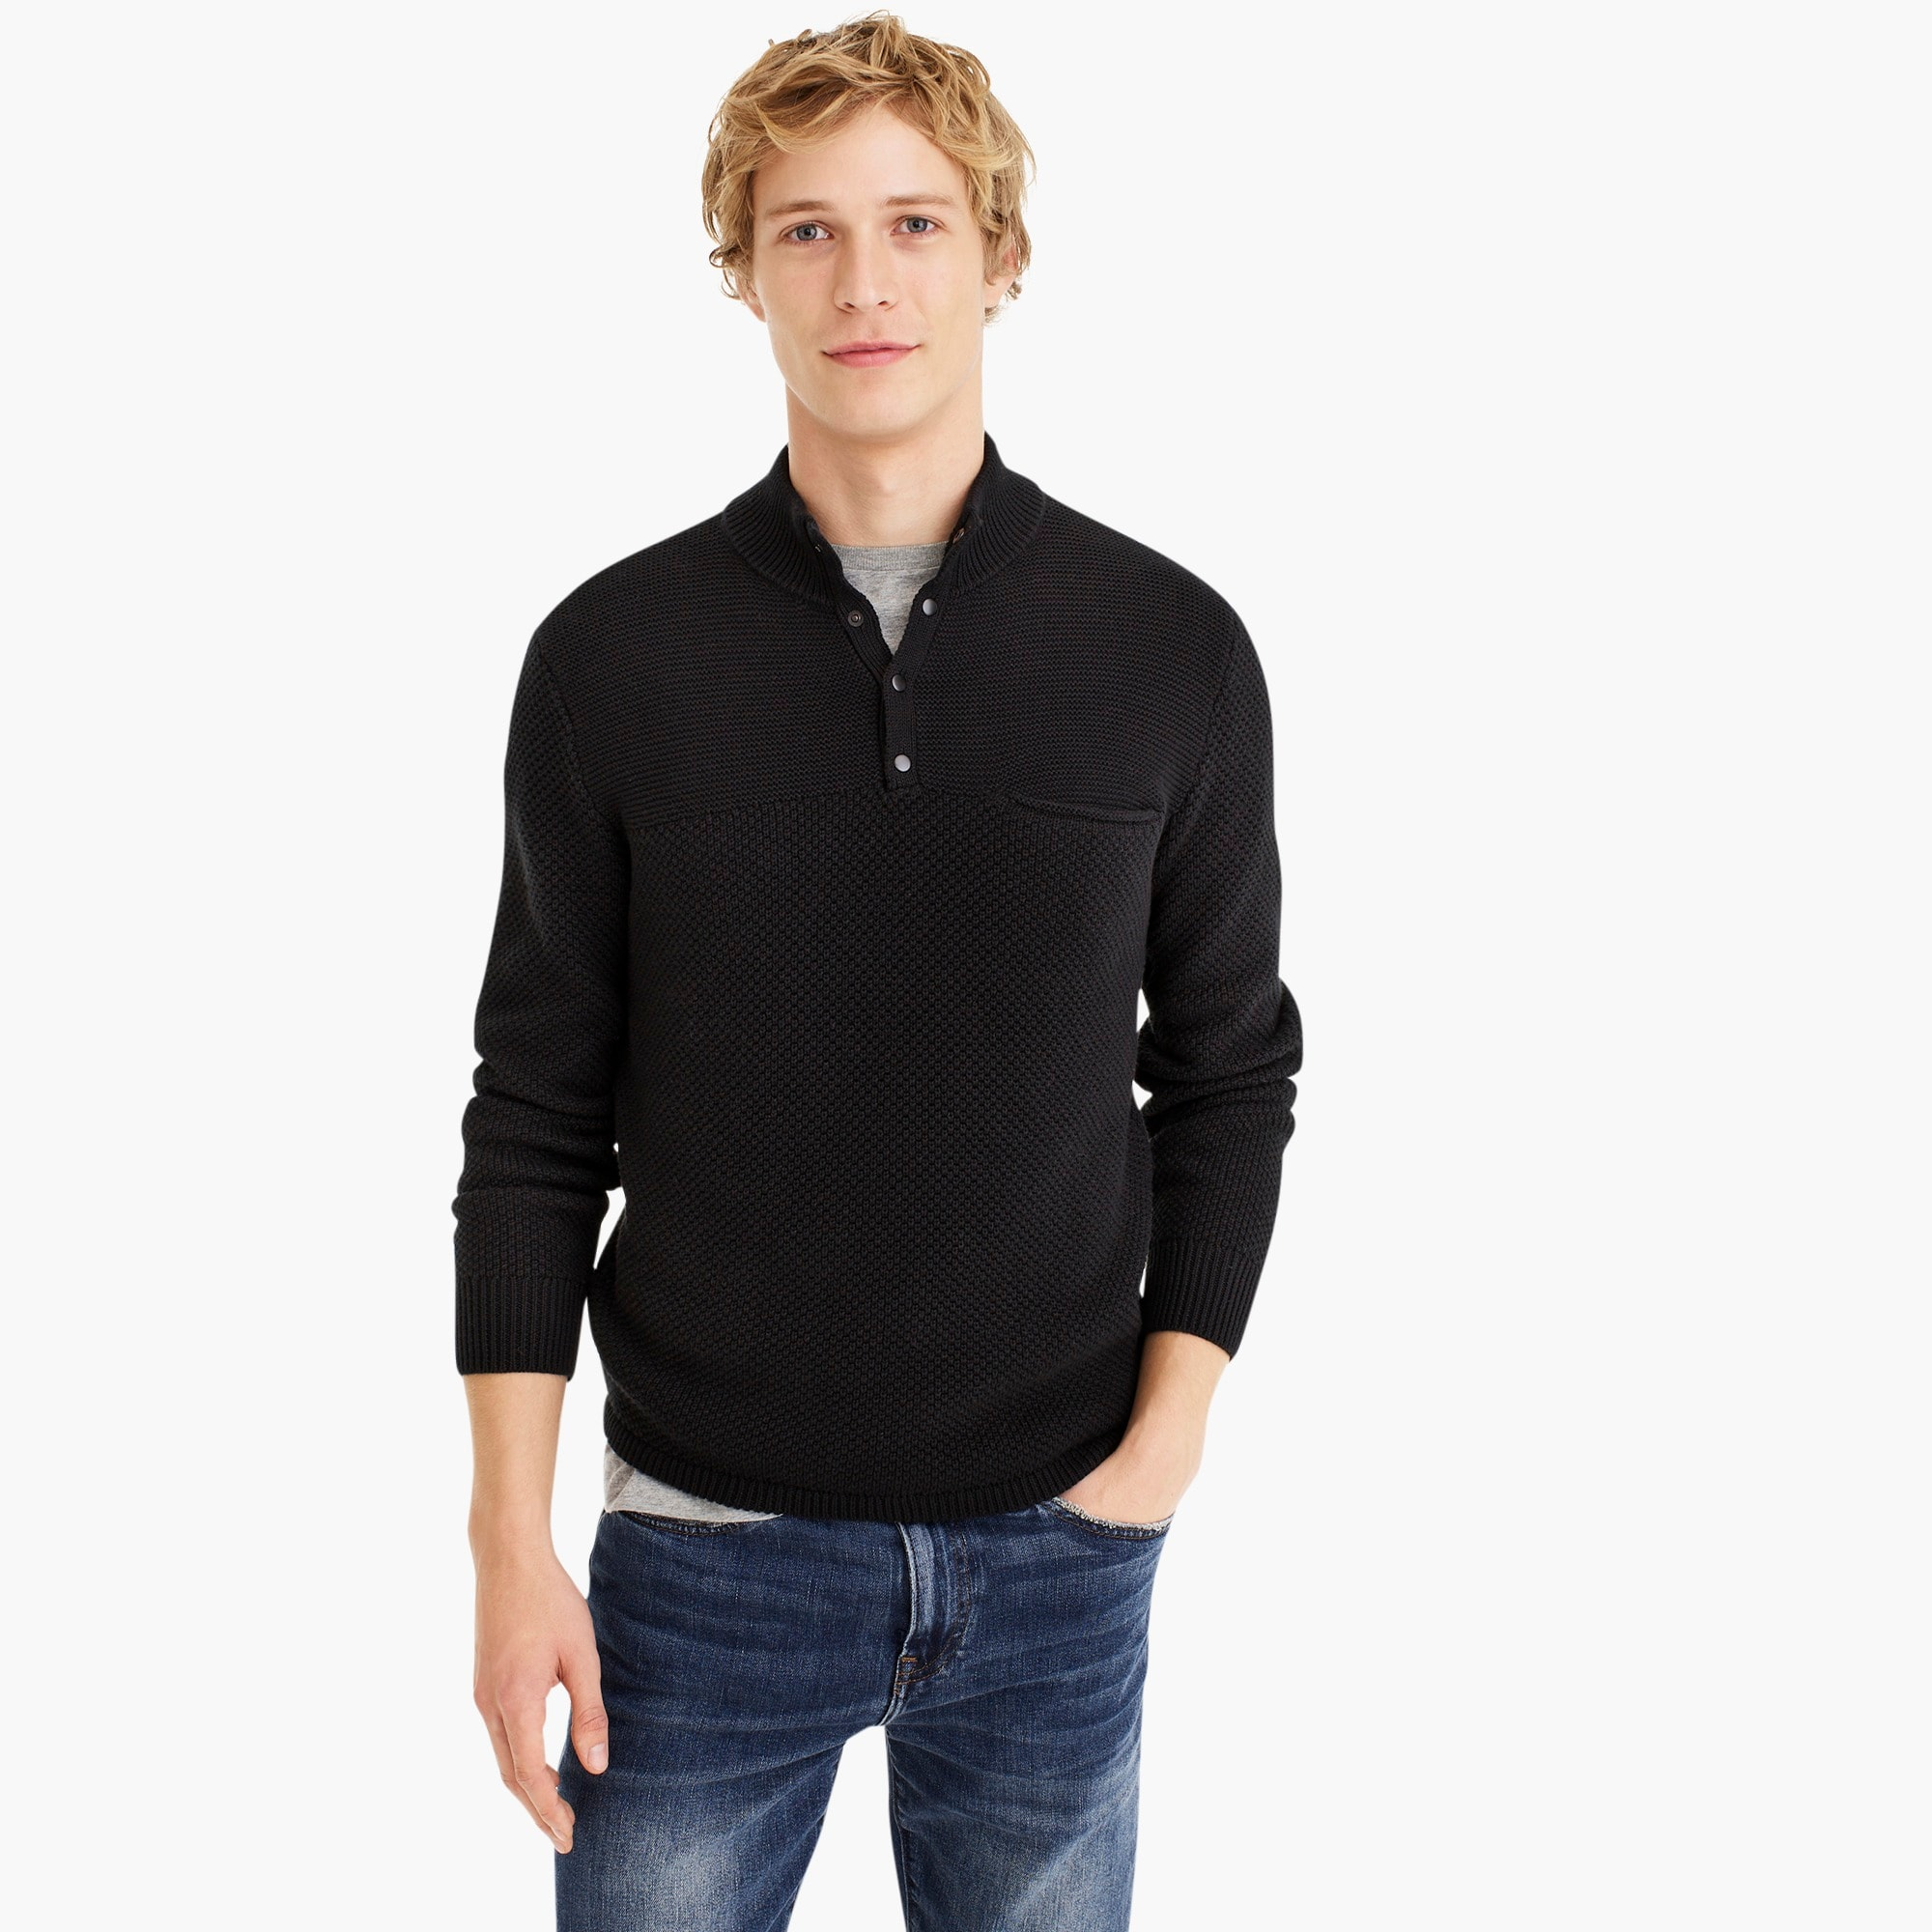 mens Thermal cotton half-button pullover sweater